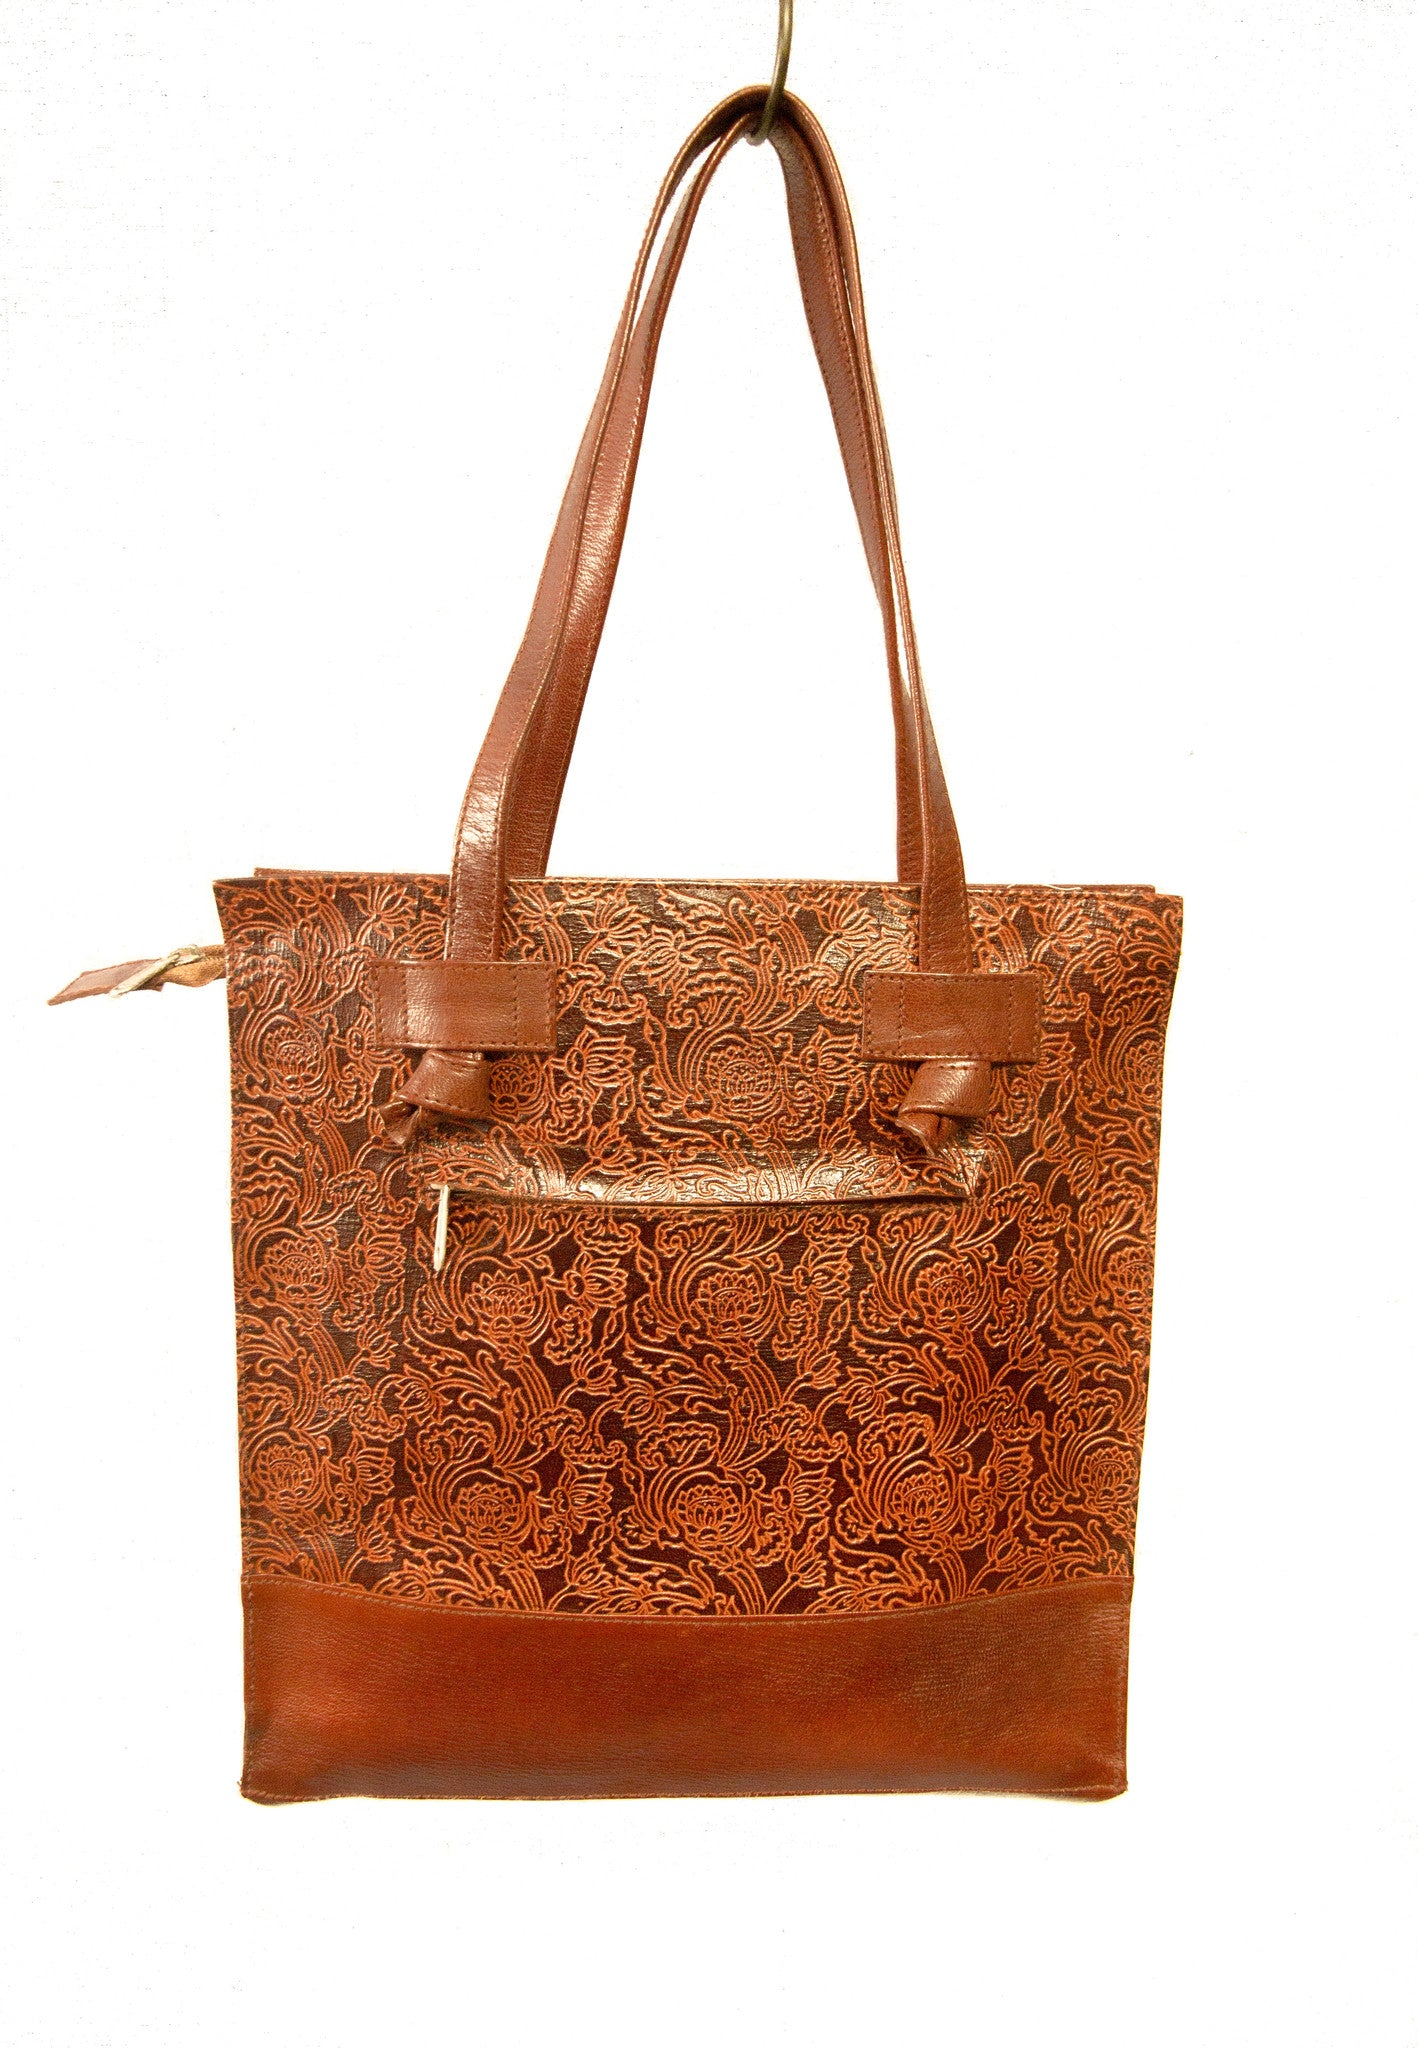 Fair Trade Leather Handbag